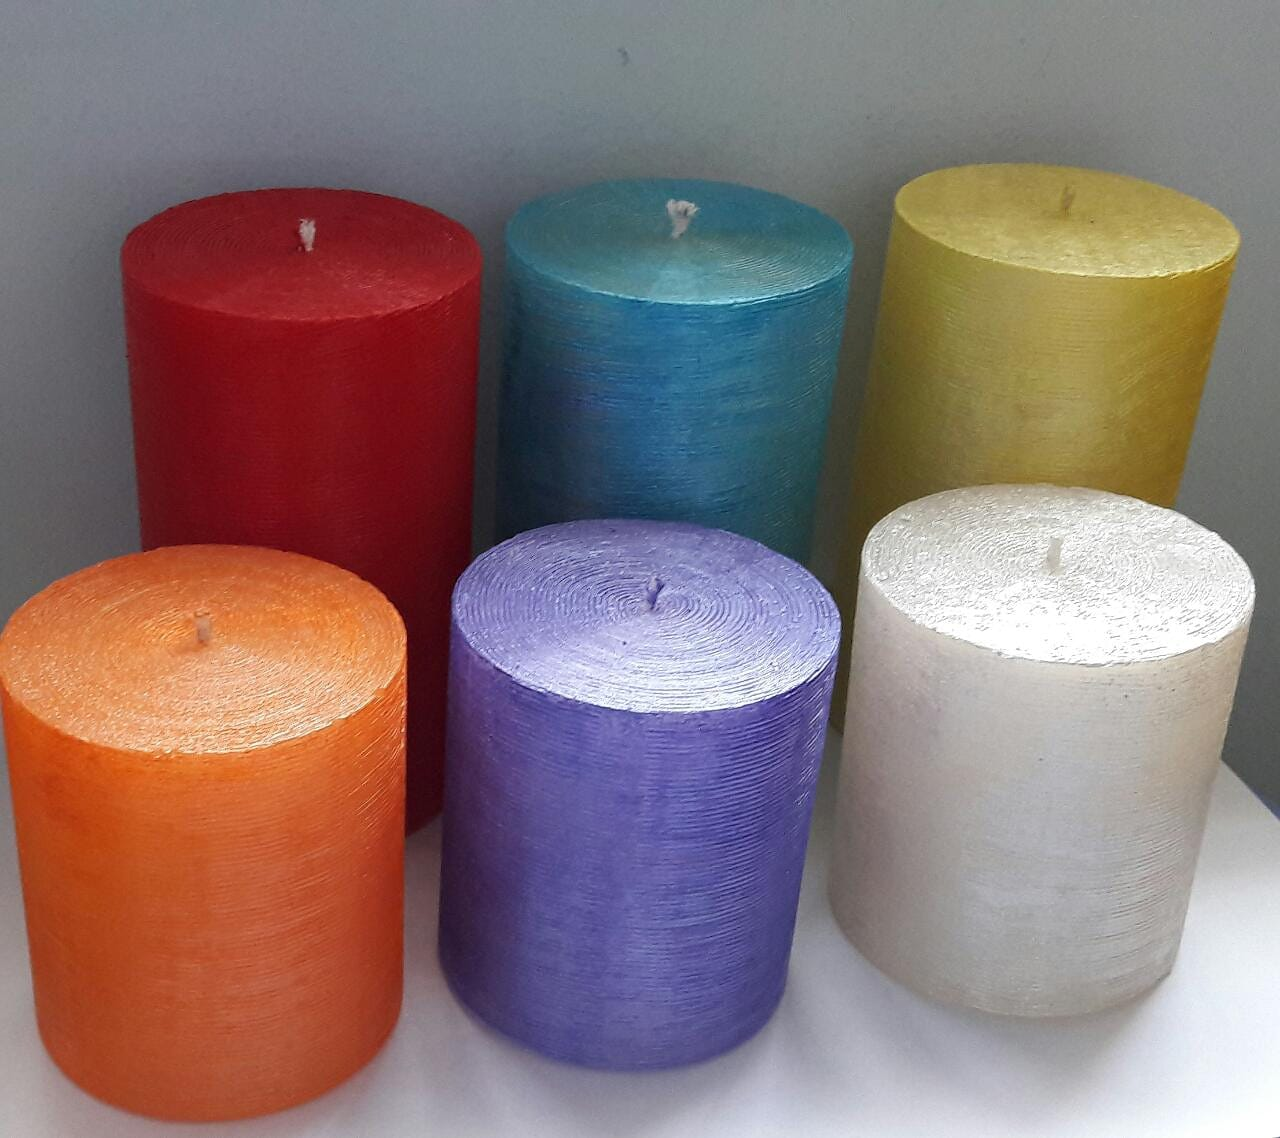 A One-Stop Shop for All Designer Candles and Candlemaking